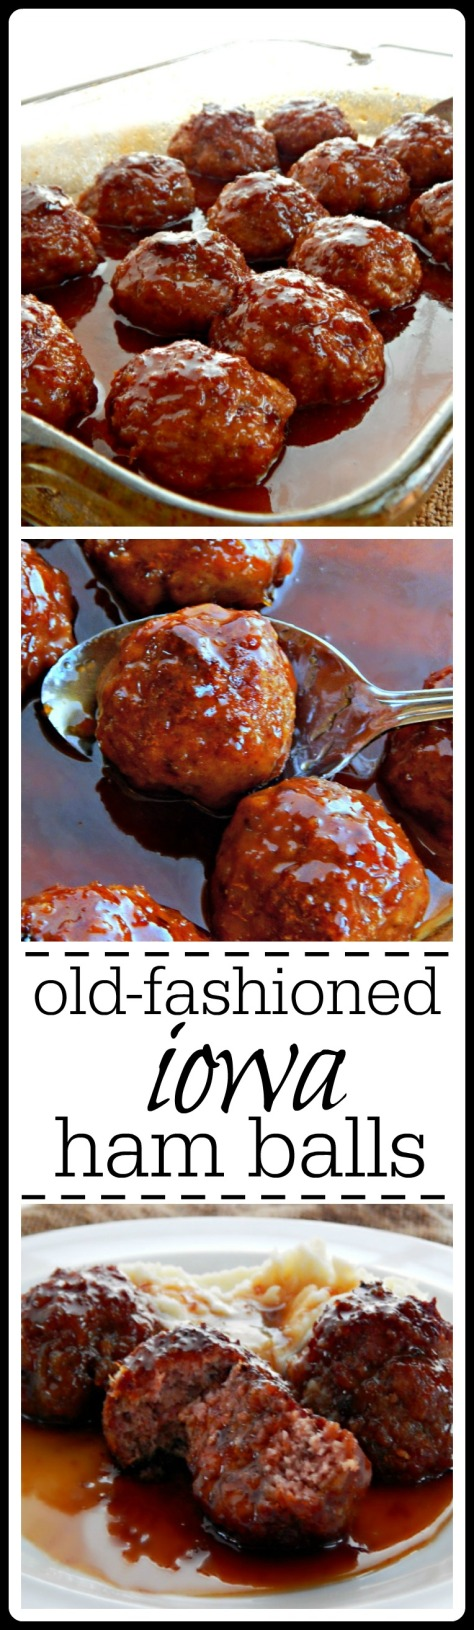 The real deal Iowa Ham Balls with a Sweet Sour Glaze. No soups or strange stuff, just great cookin'.